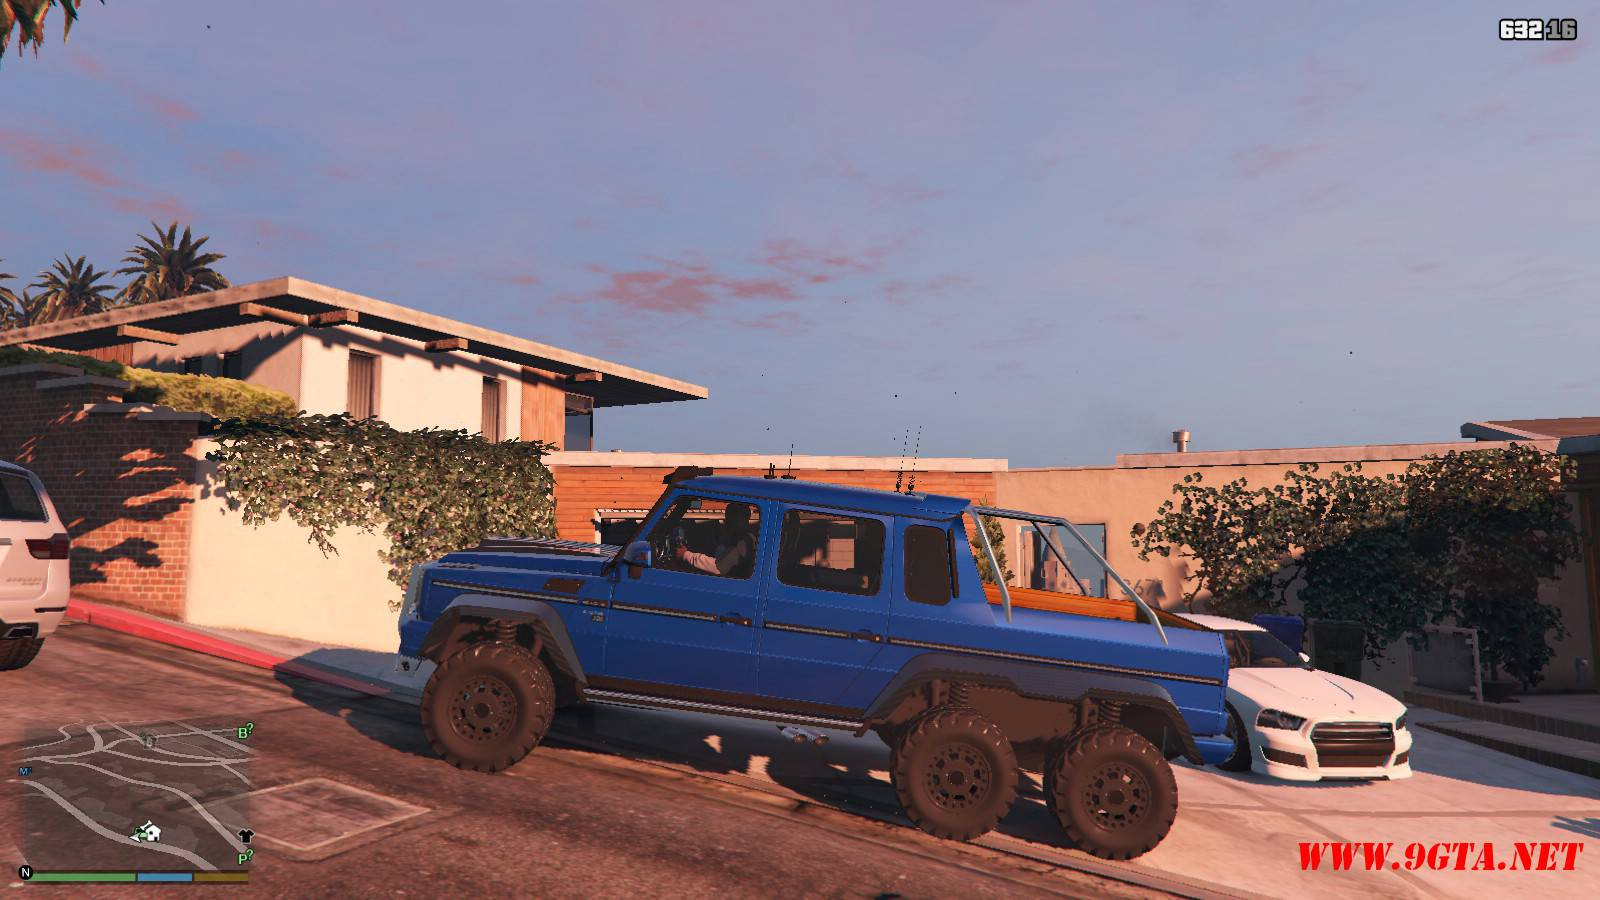 Barbus 700 G63 AMG GTA5 Mods (2)